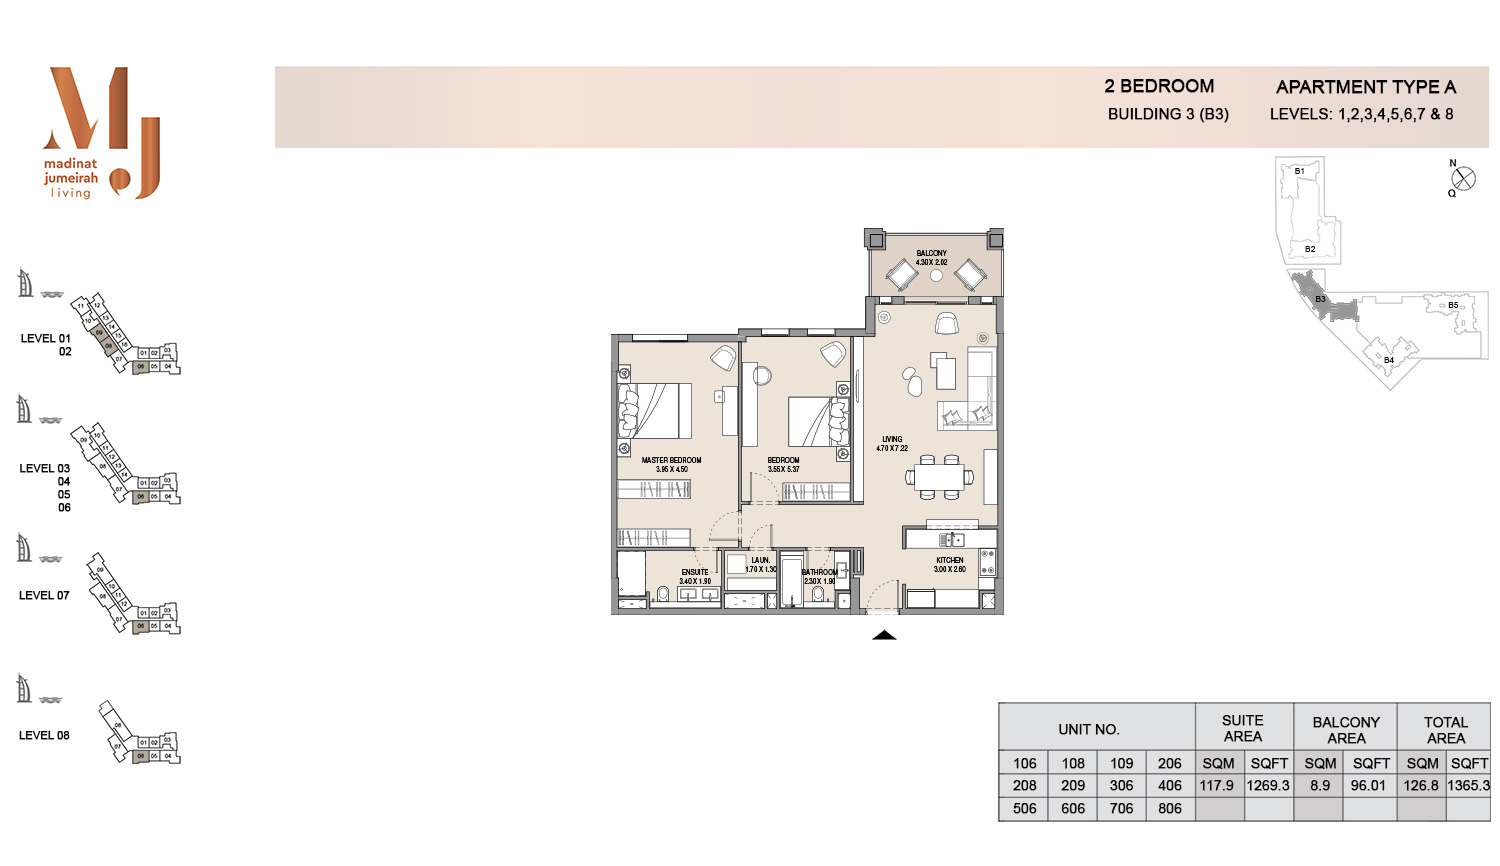 Building3 2 Bedroom, Type A, Levels 1 to 8, Size 1365.3 sq.ft